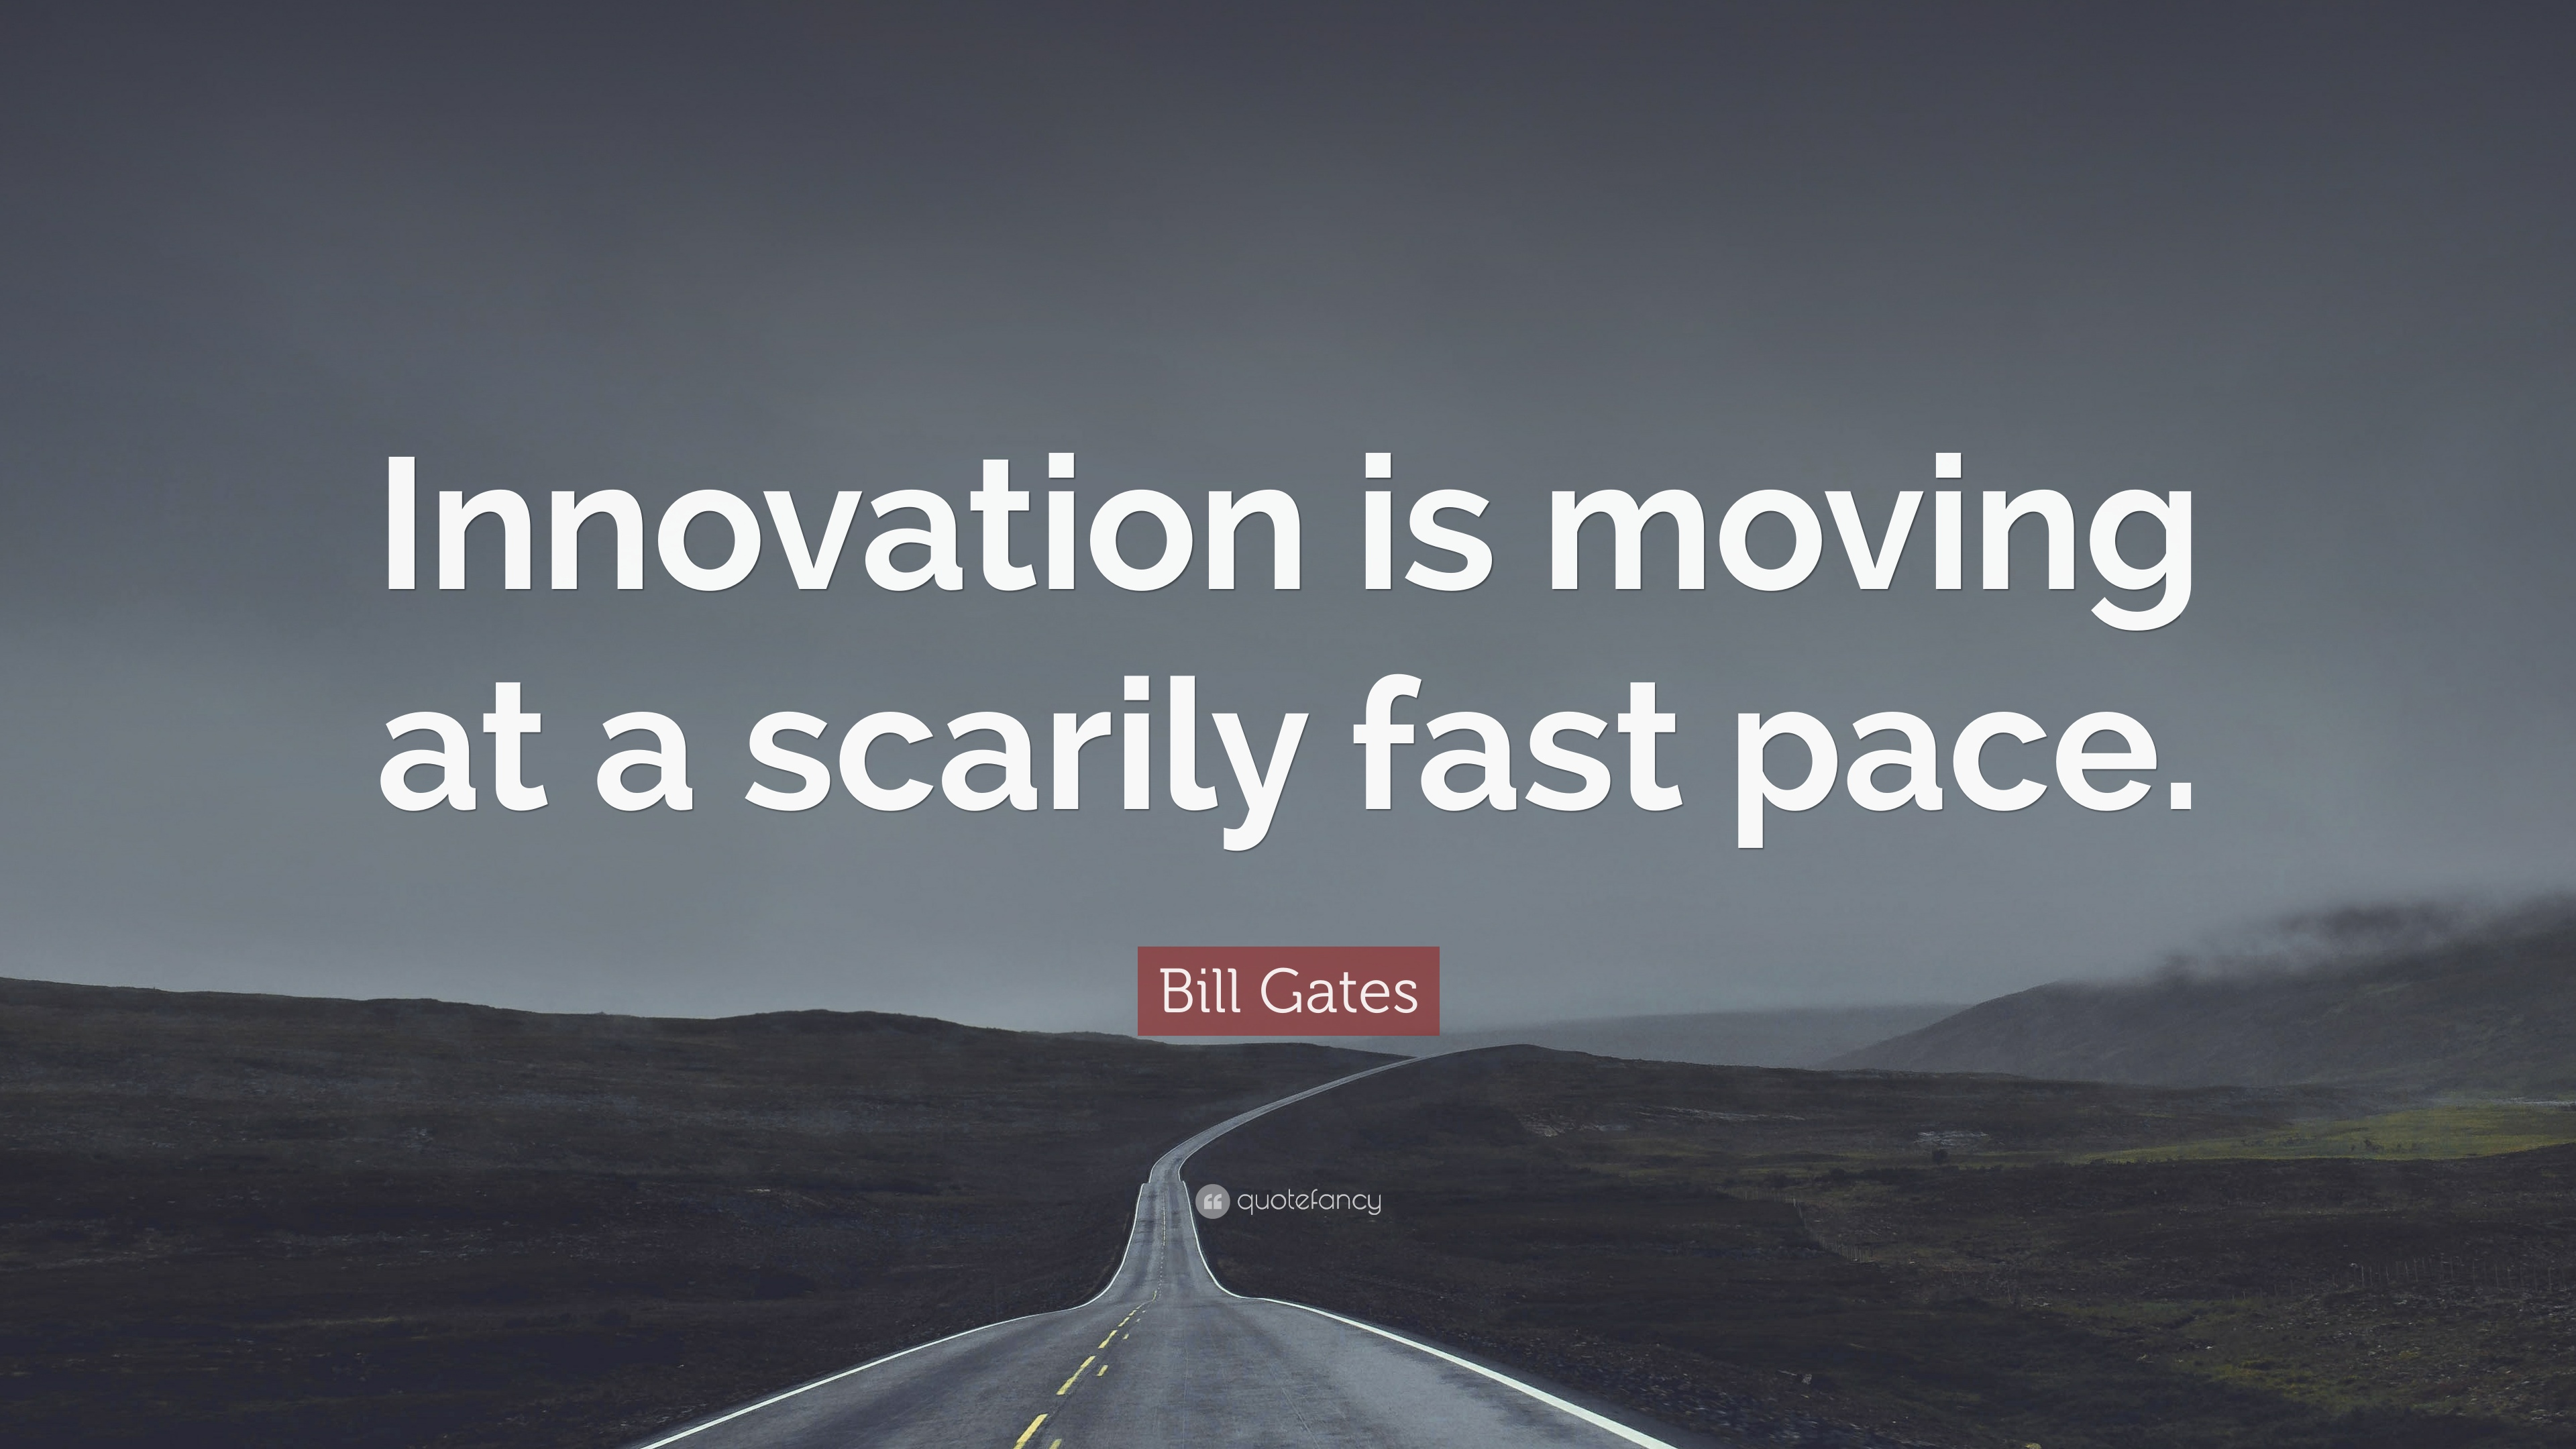 Quotes On Innovation Classy Innovation Quotes 40 Wallpapers  Quotefancy